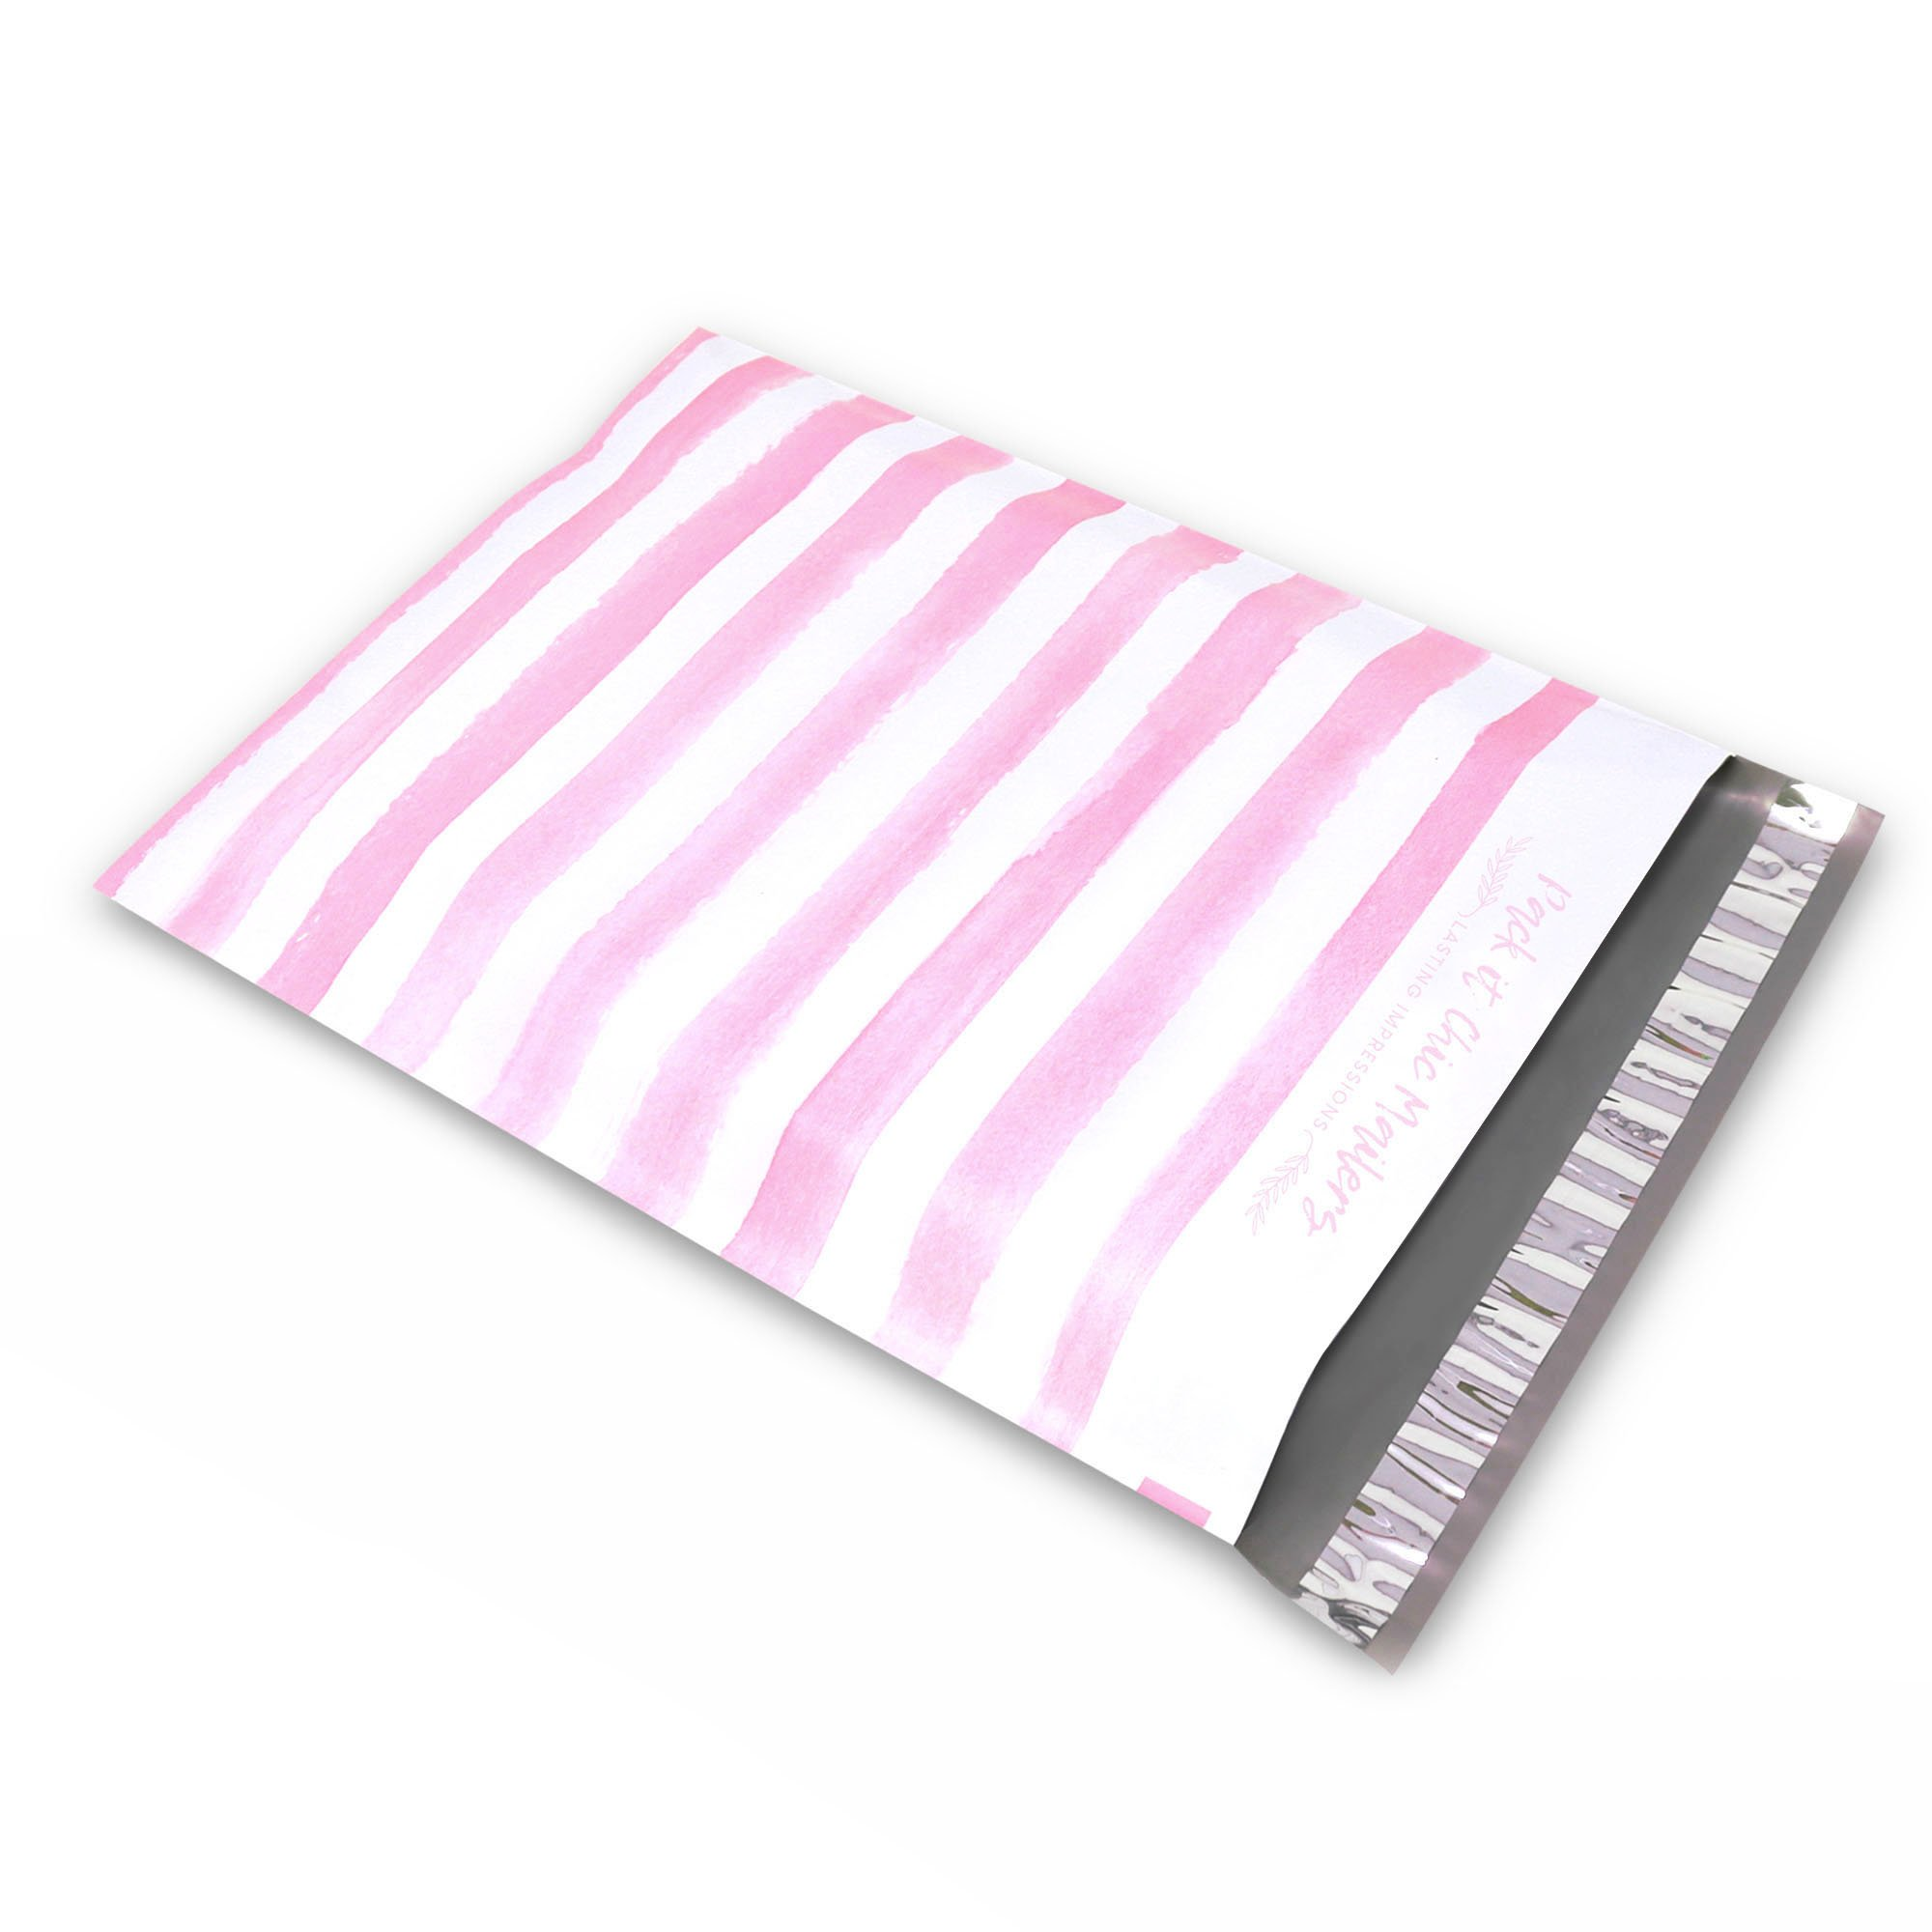 "[ 100-10"" X 13"" ] Pink Watercolor Stripes Design Custom Poly Mailer Envelope Shipping Bags, Tear Proof & Powerful Self Seal Adhesive Postal Bags (Other Designs Available) - Pack It Chic"